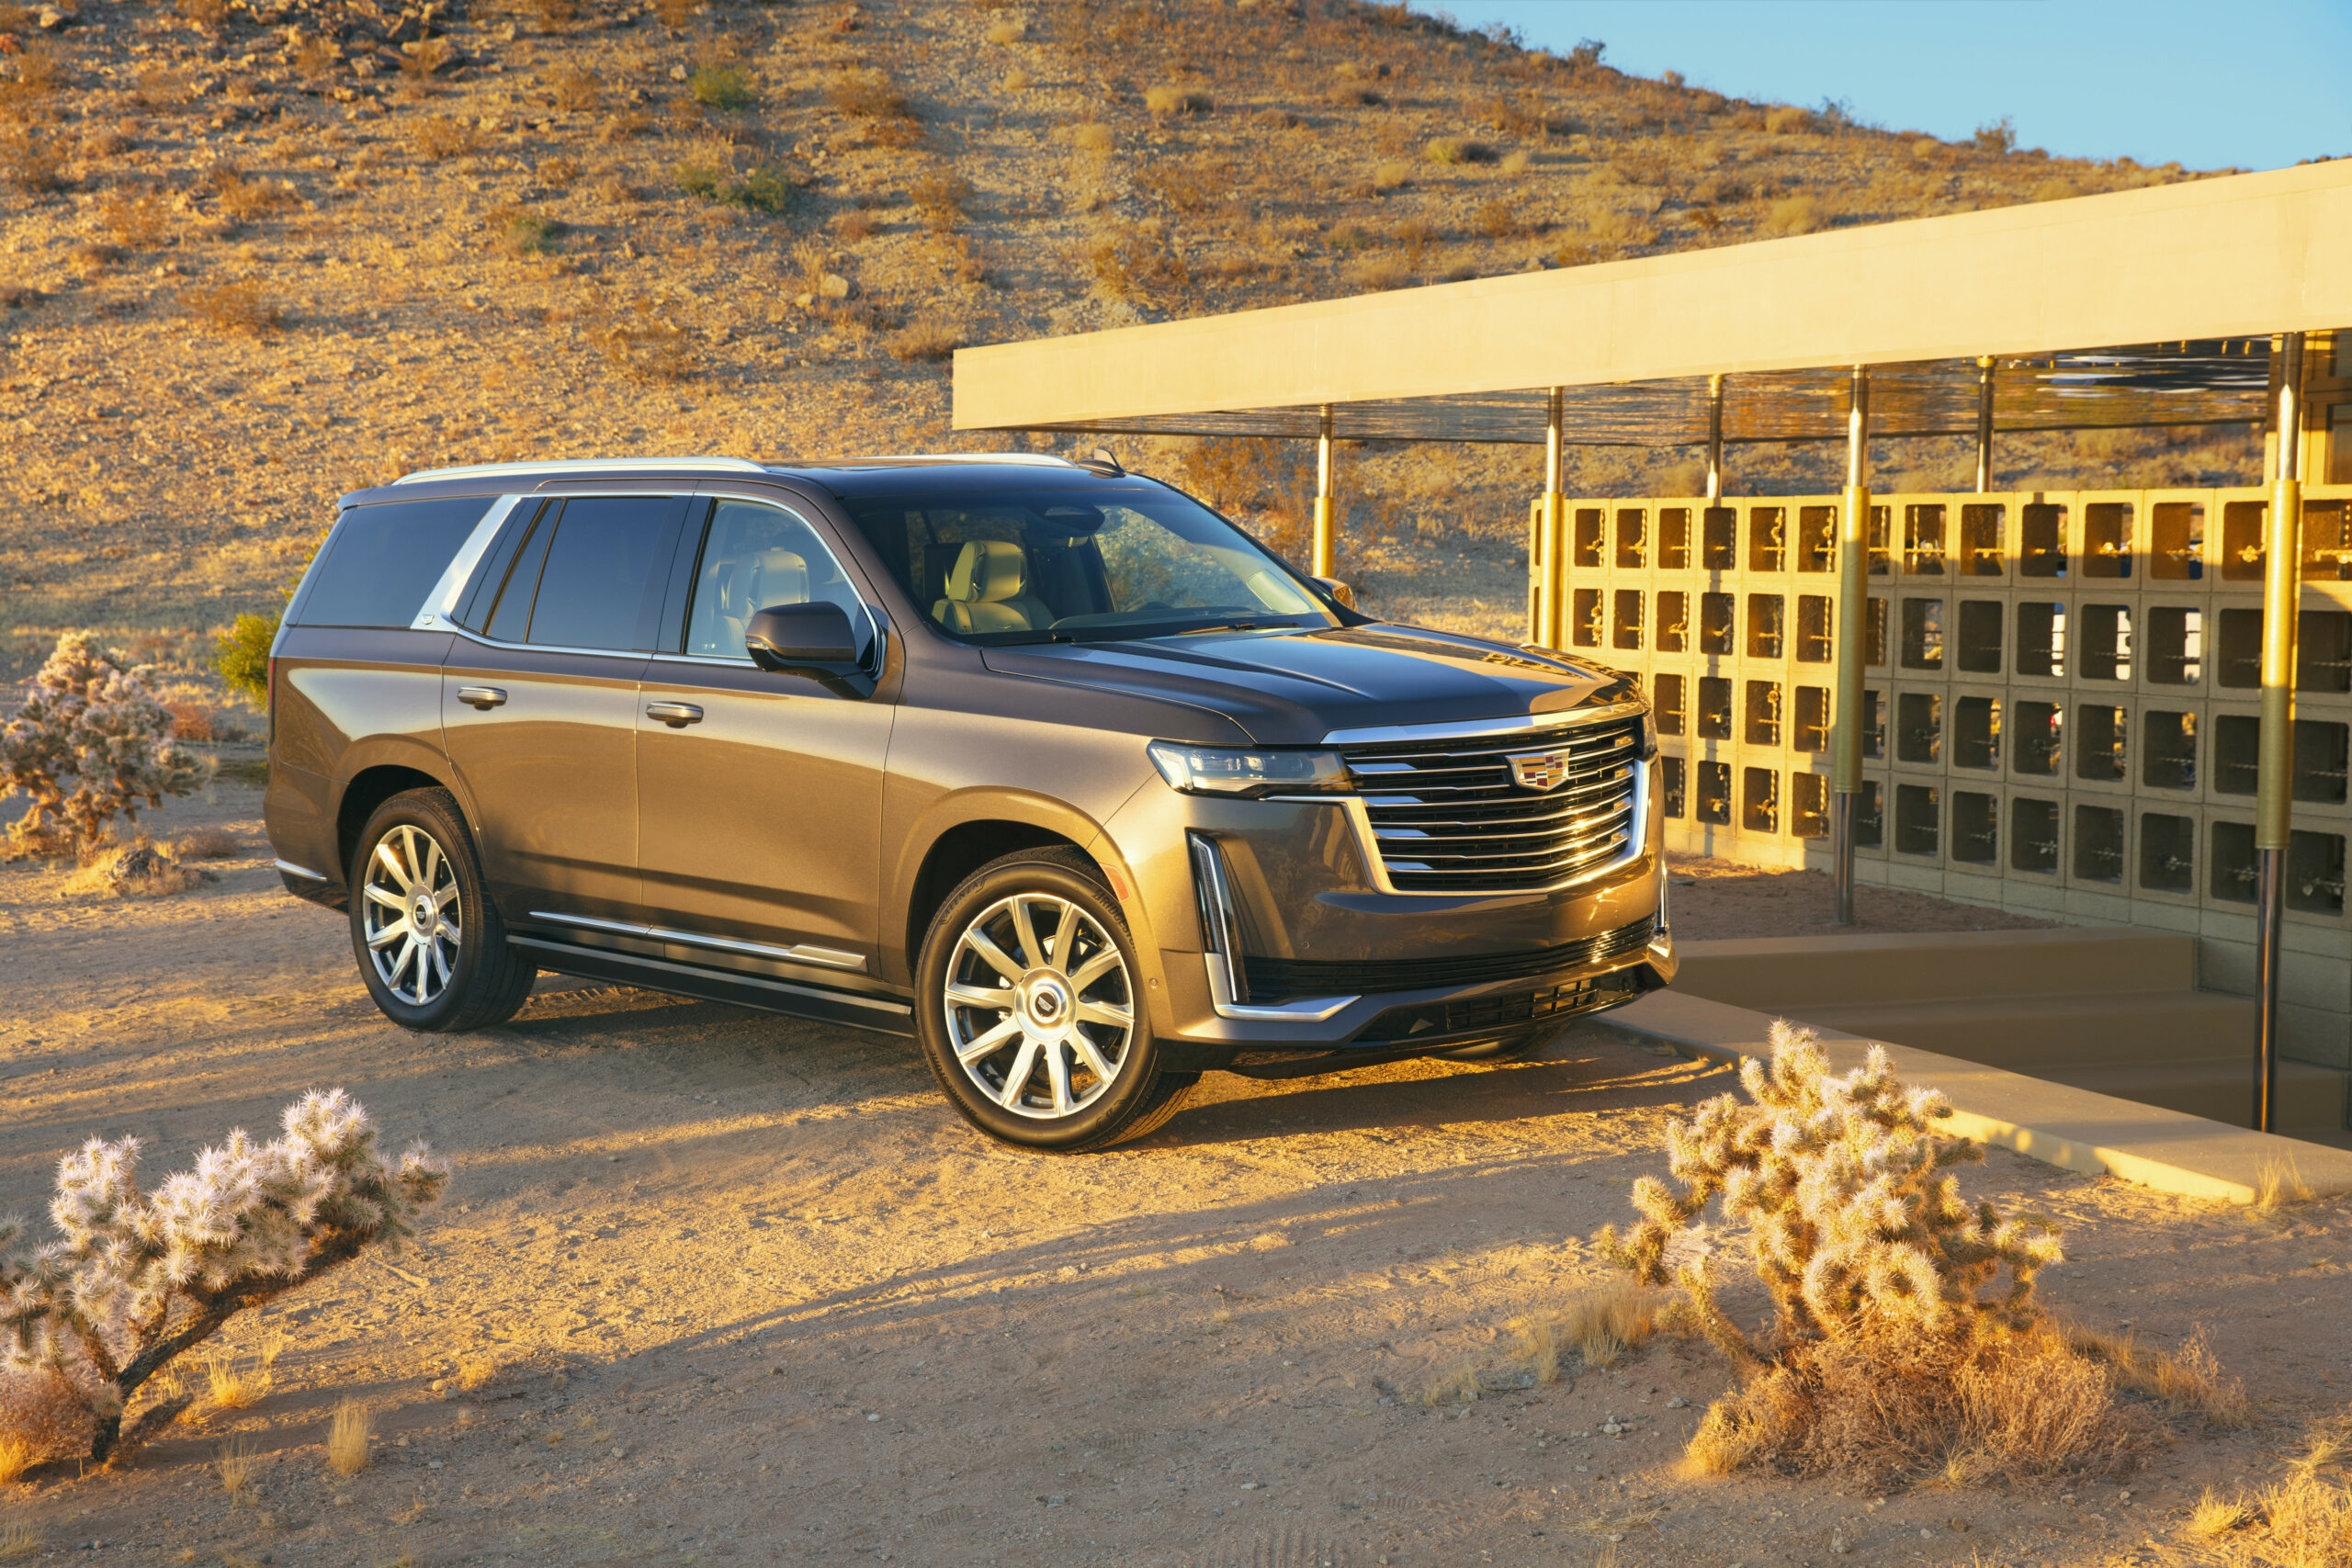 Redesign and Review Cadillac Escalade 2022 Release Date